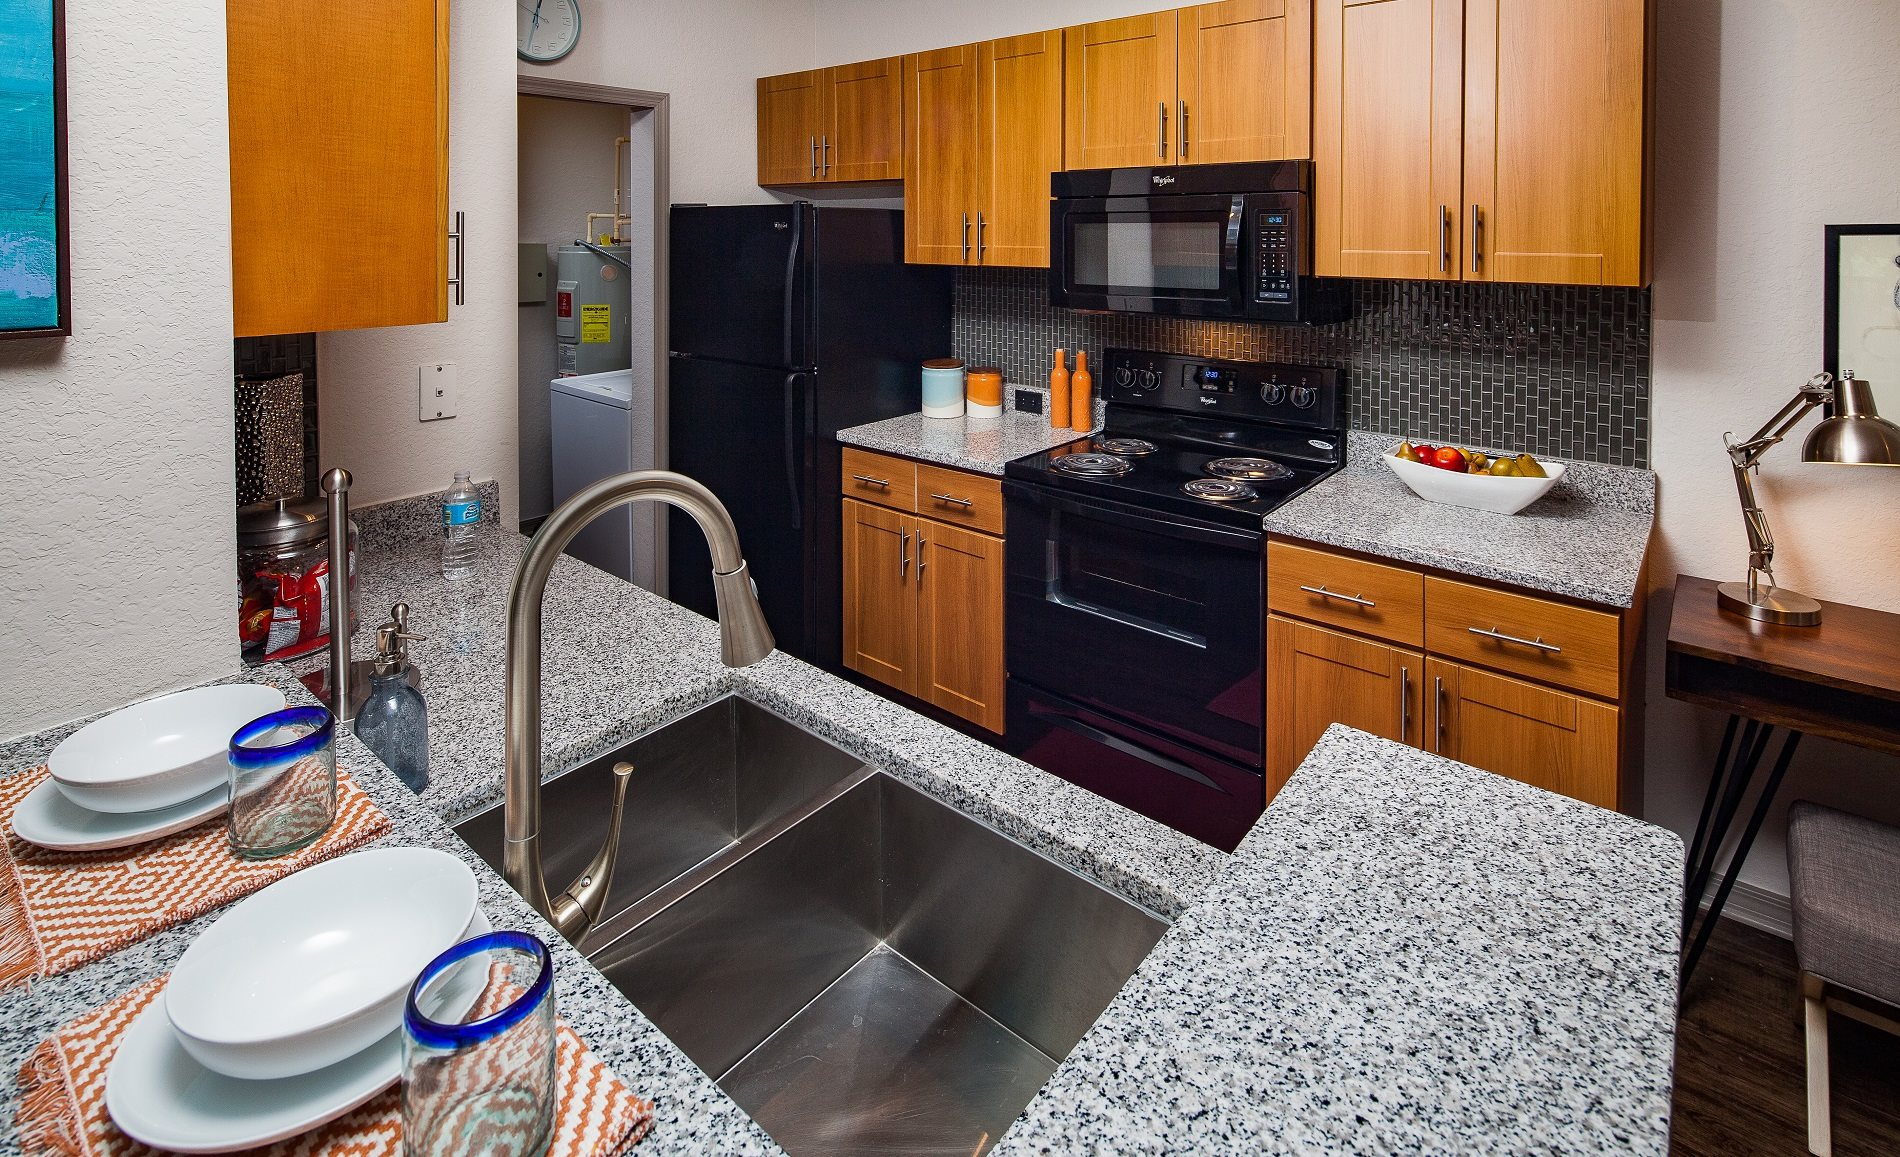 Gourmet kitchen with granite countertops at Legacy at Fort Clarke, Gainseville, FL, 32606